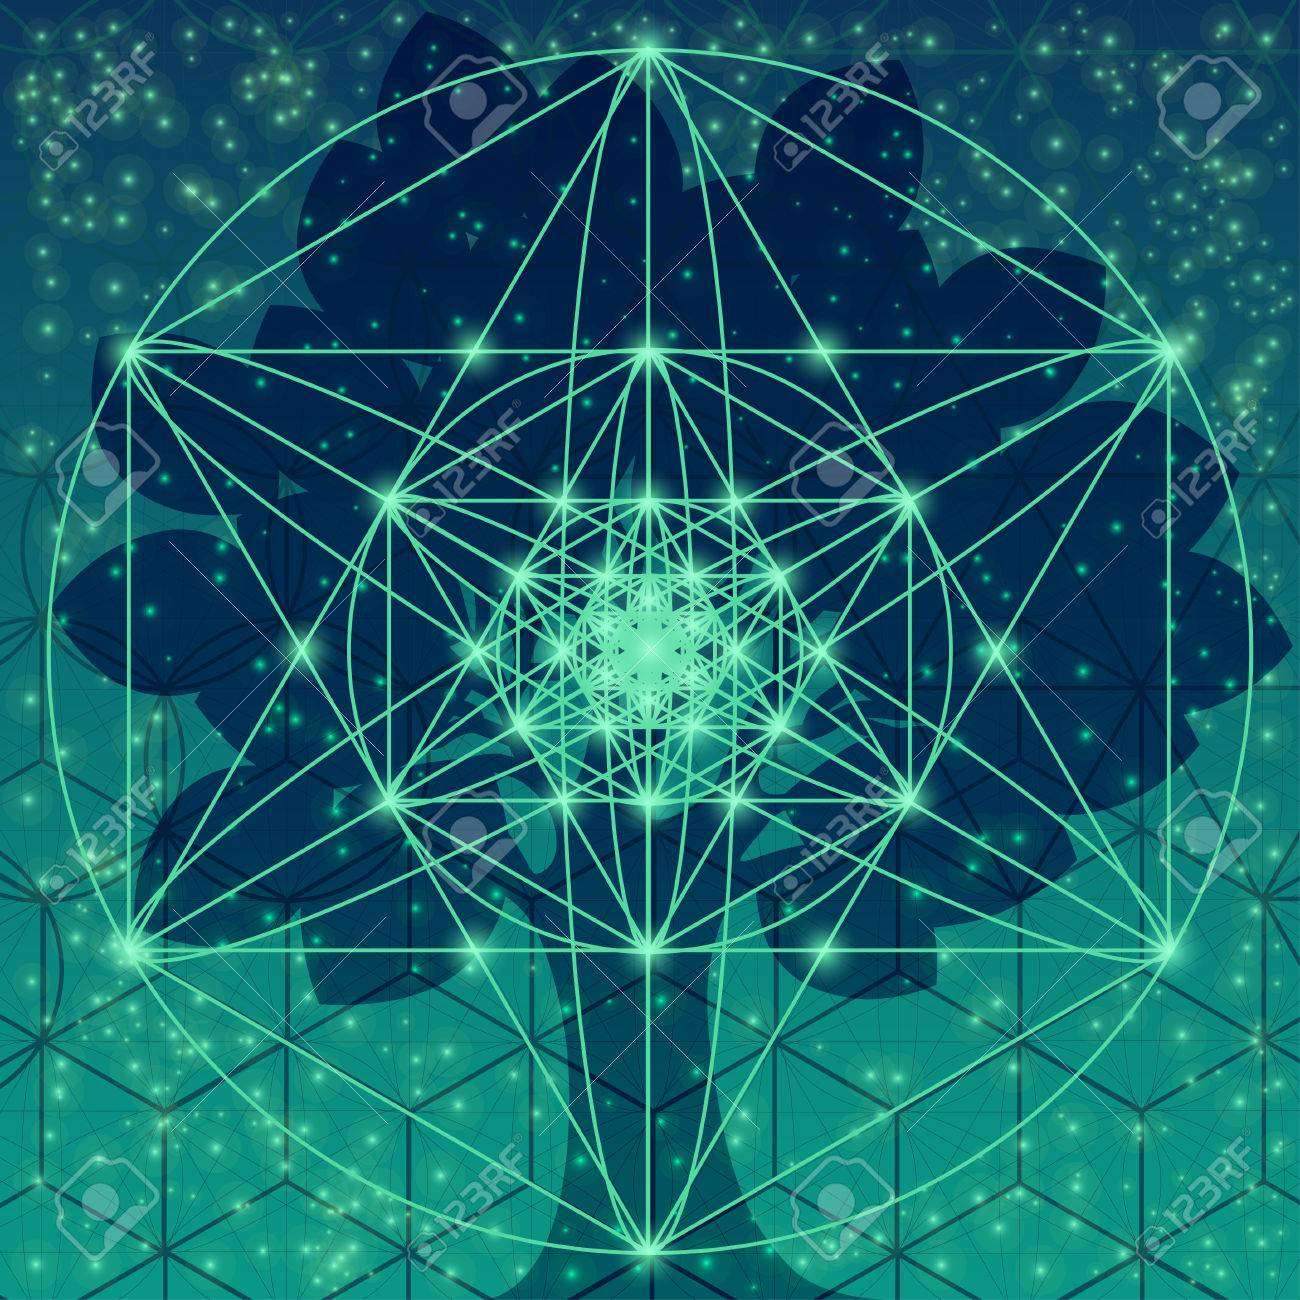 Tree with sacred geometry symbols and elements - 58027942